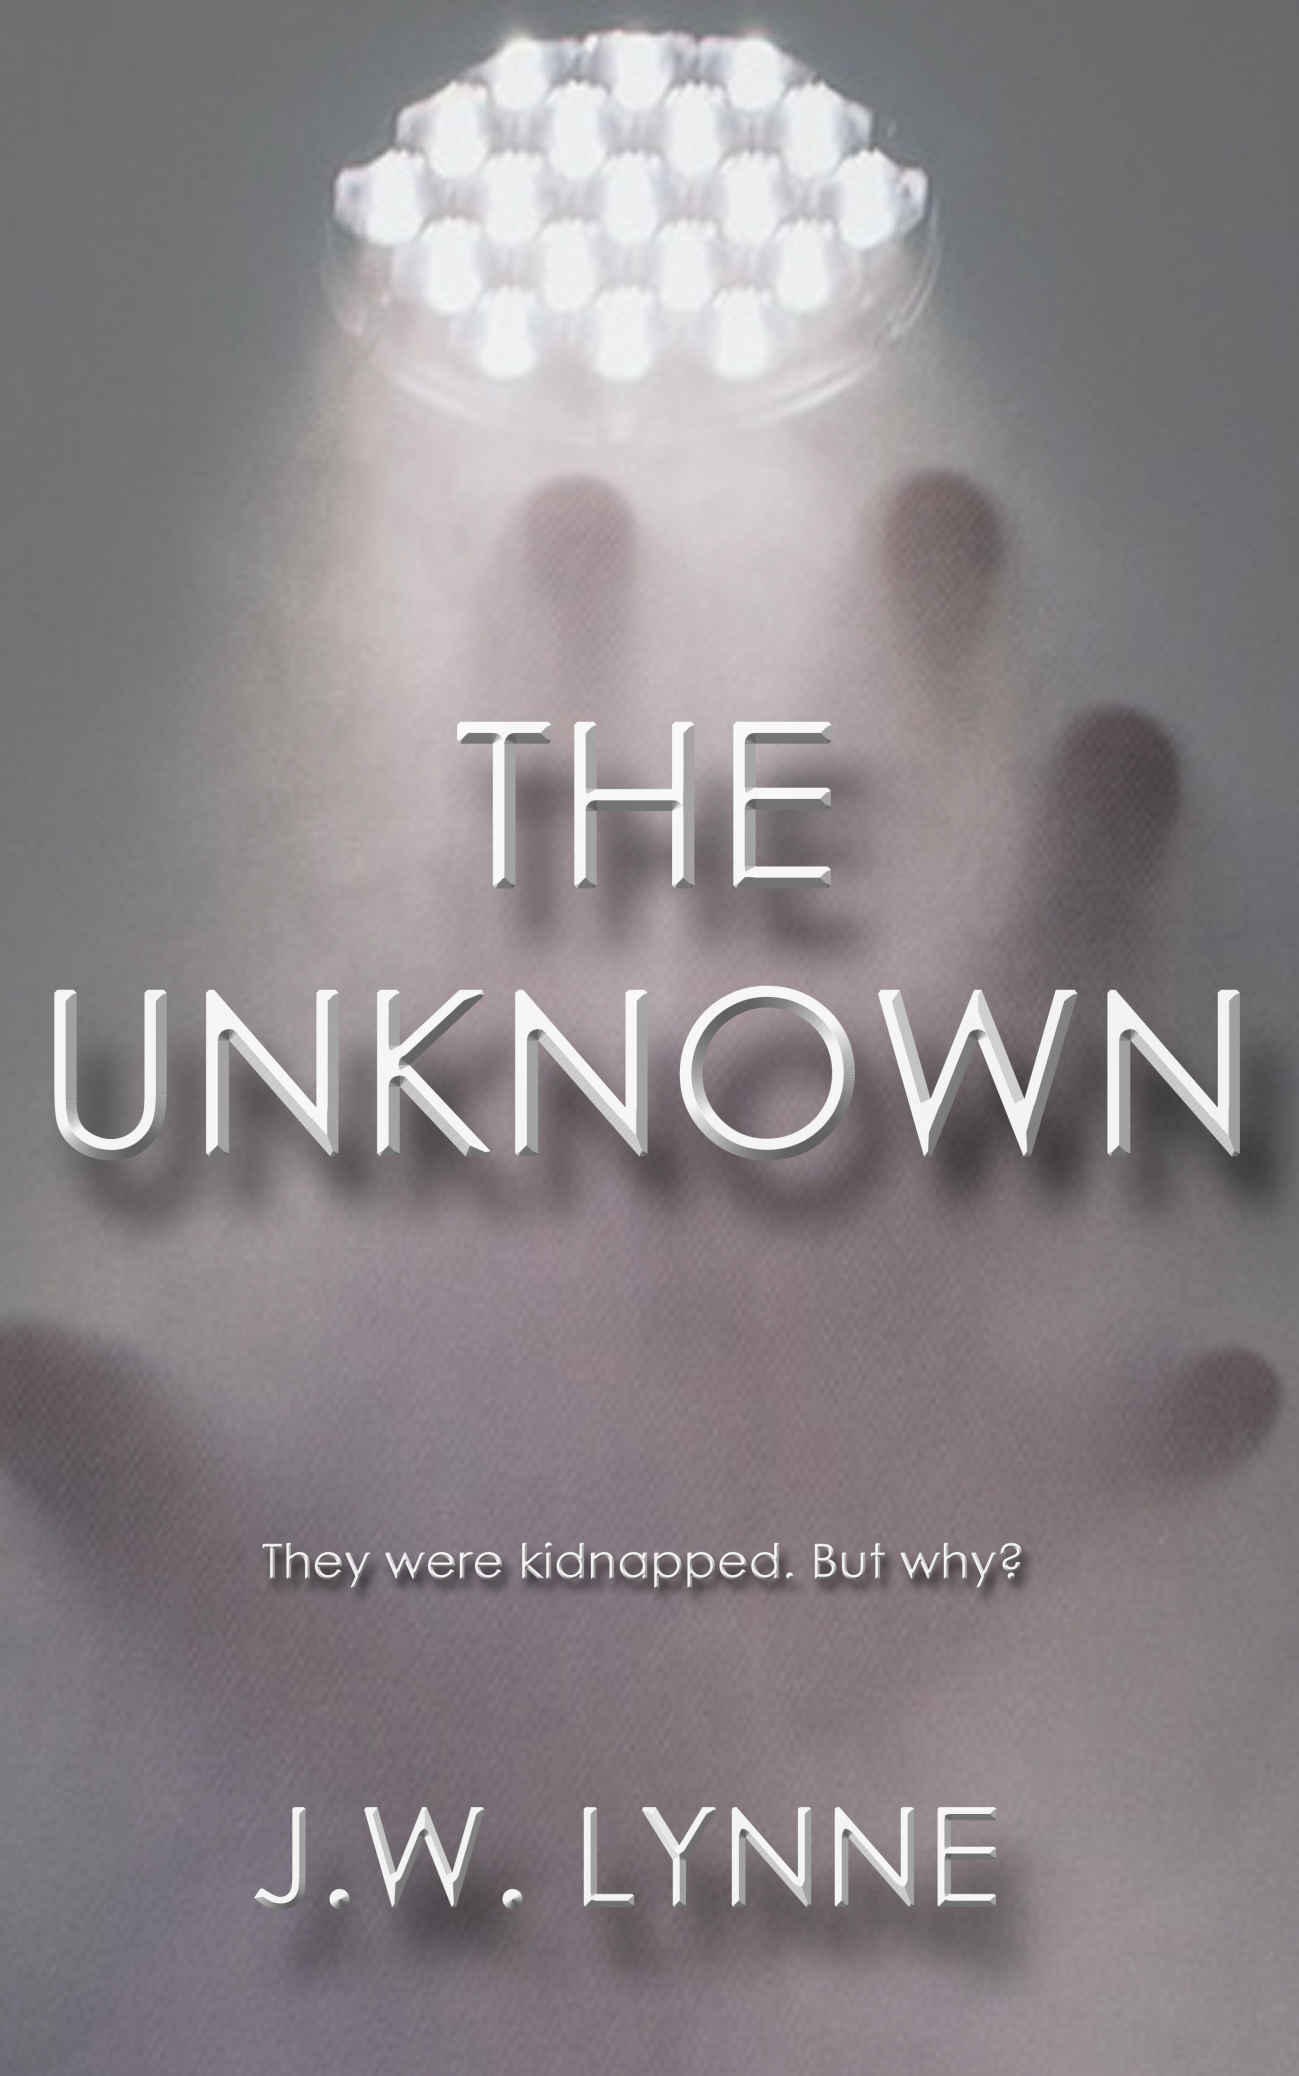 The Unknown by J.W. Lynne